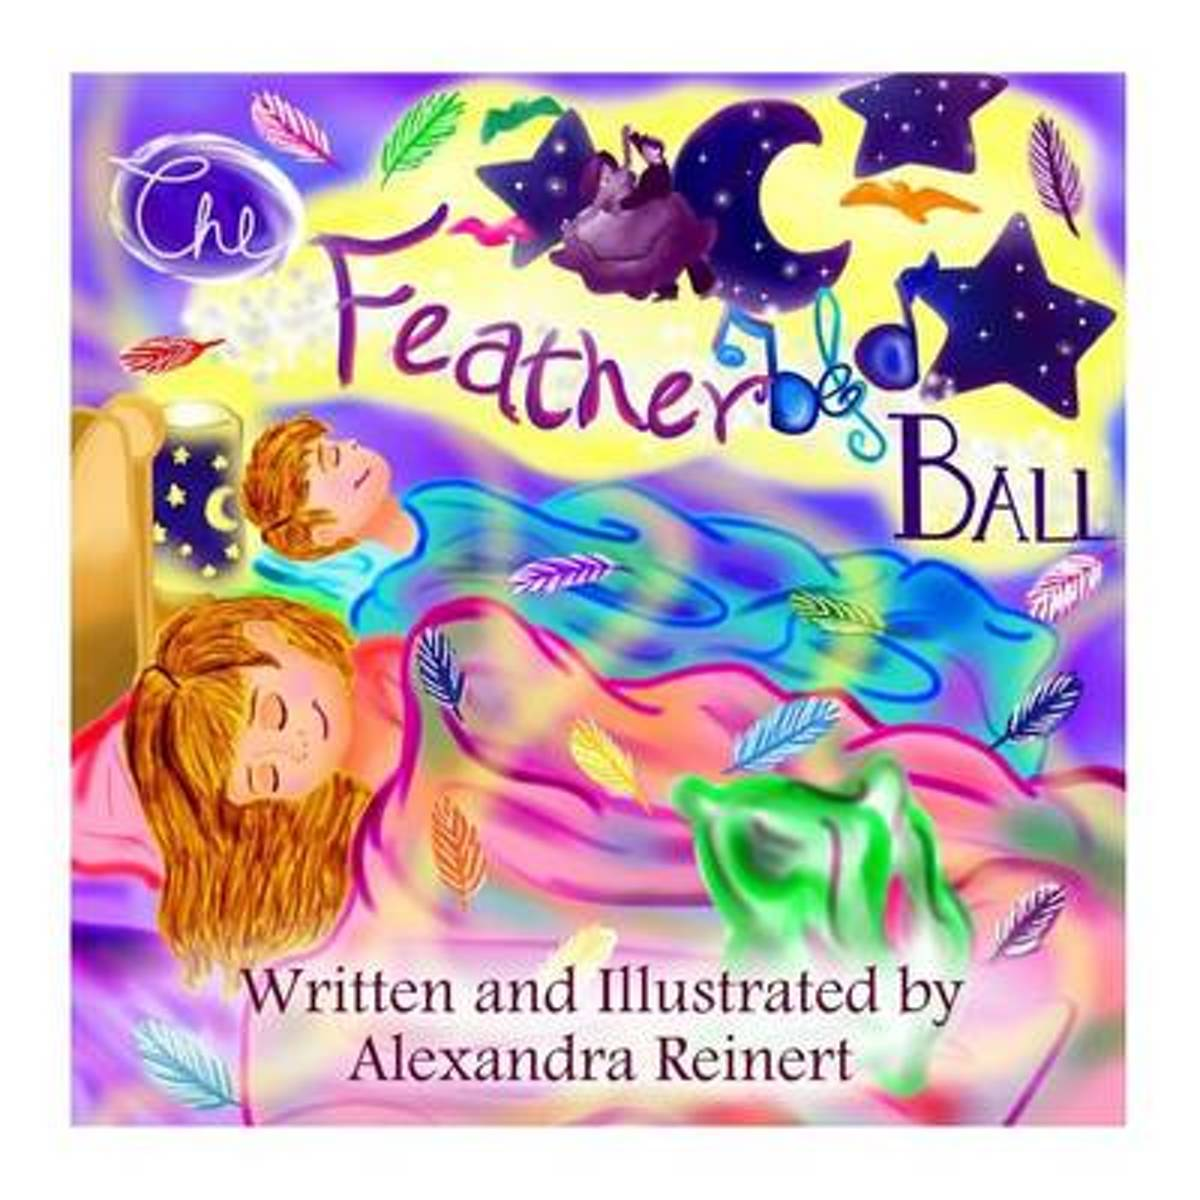 The Featherbed Ball